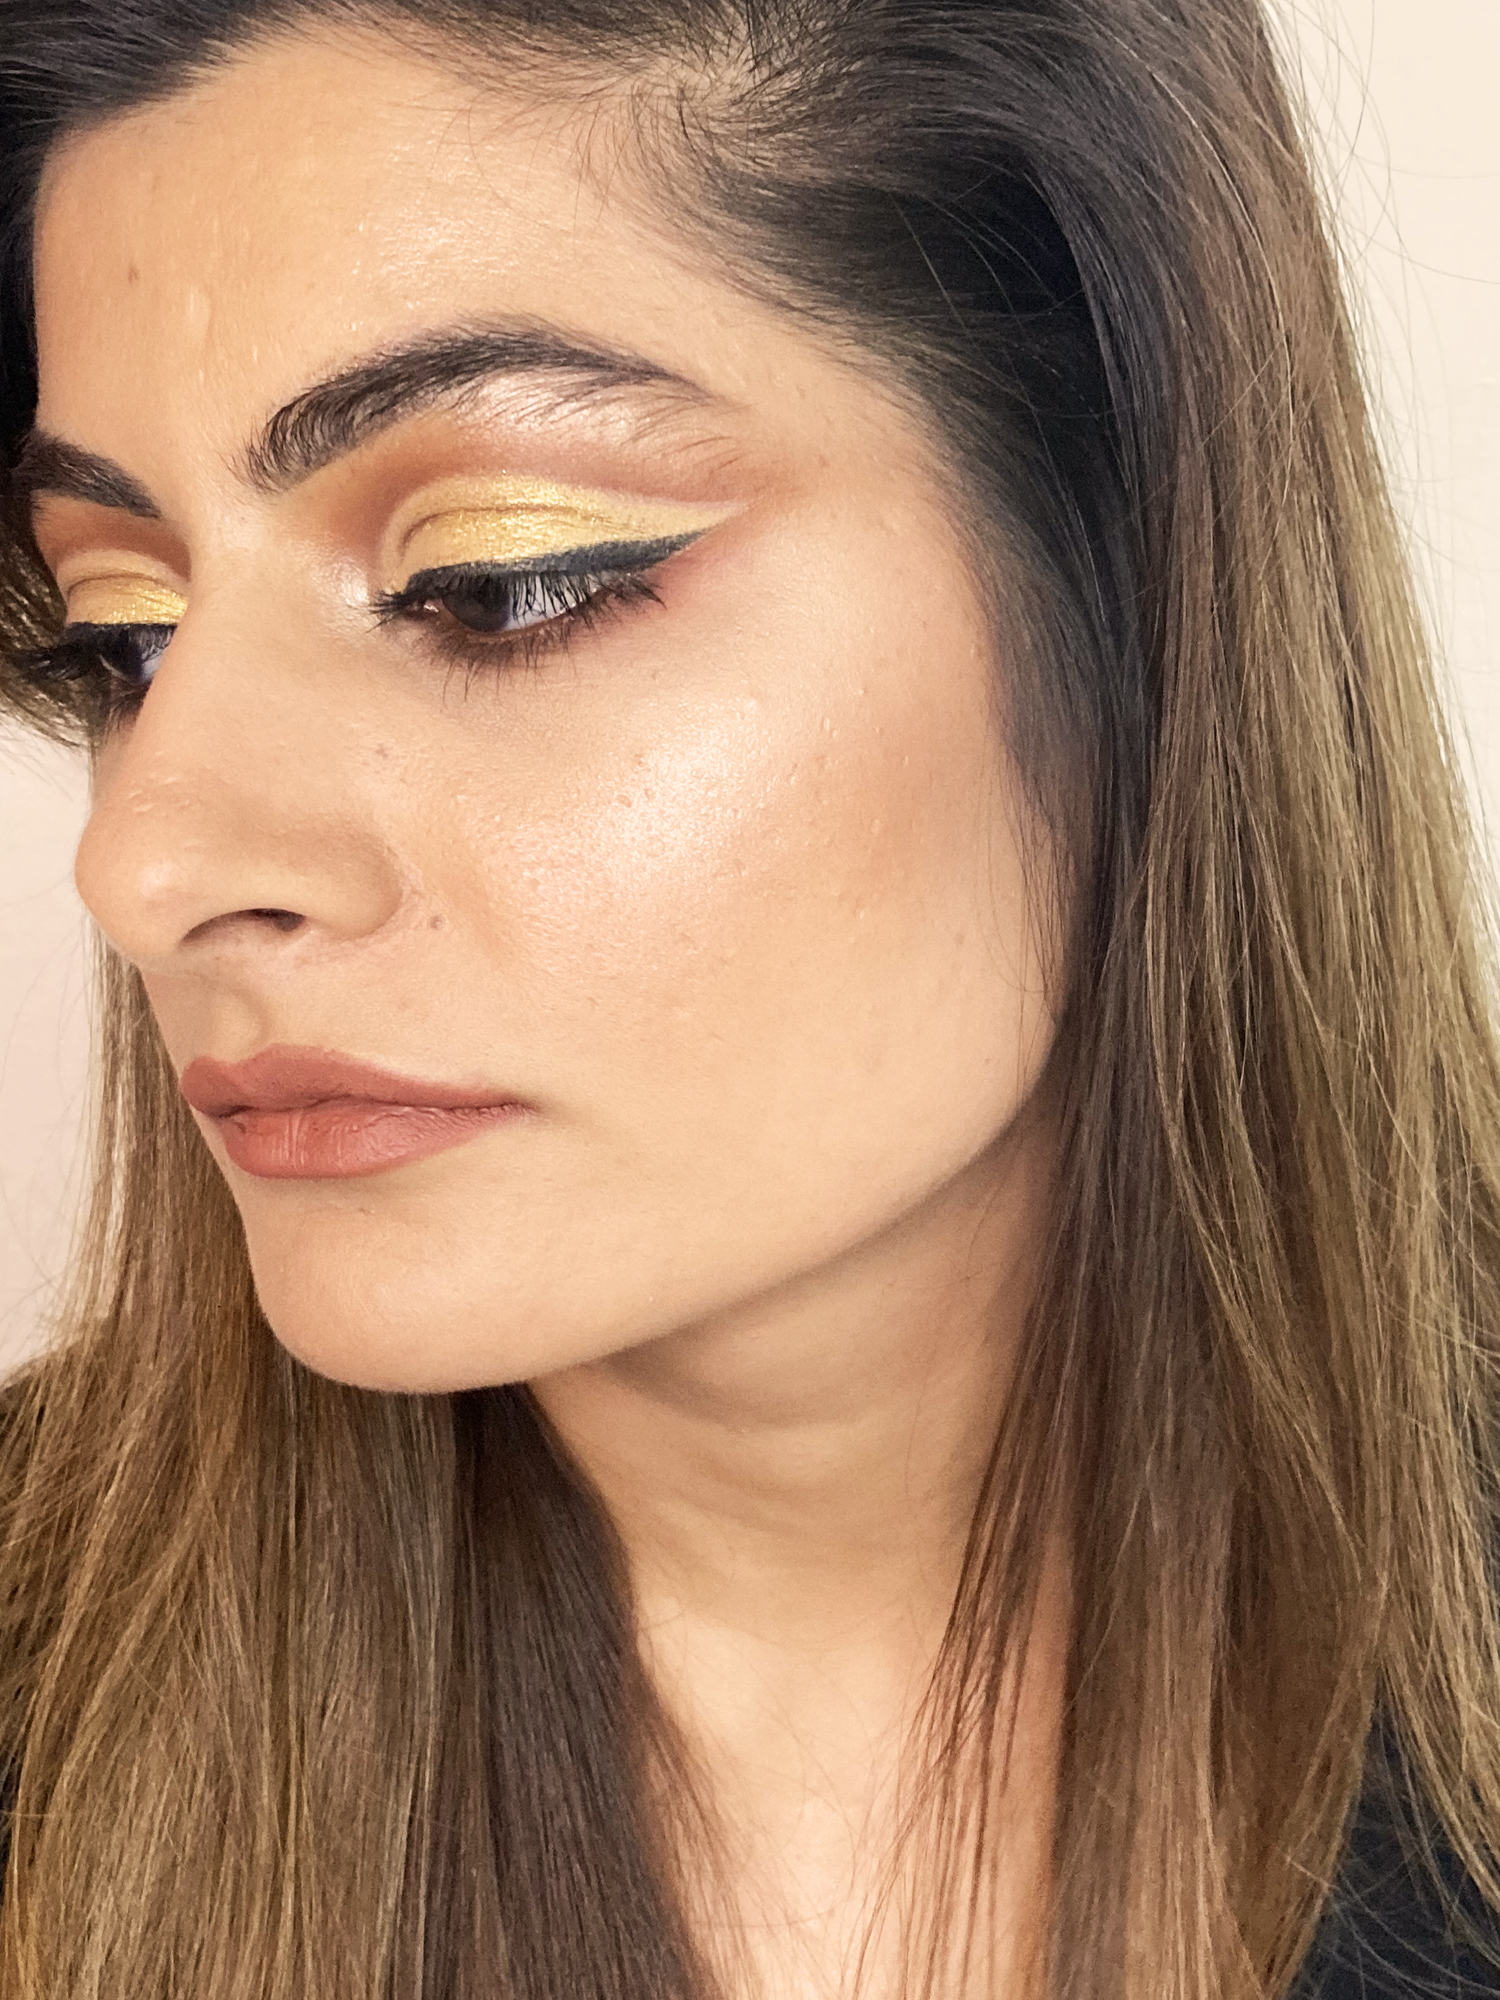 My First Ever Cut Crease! - 3